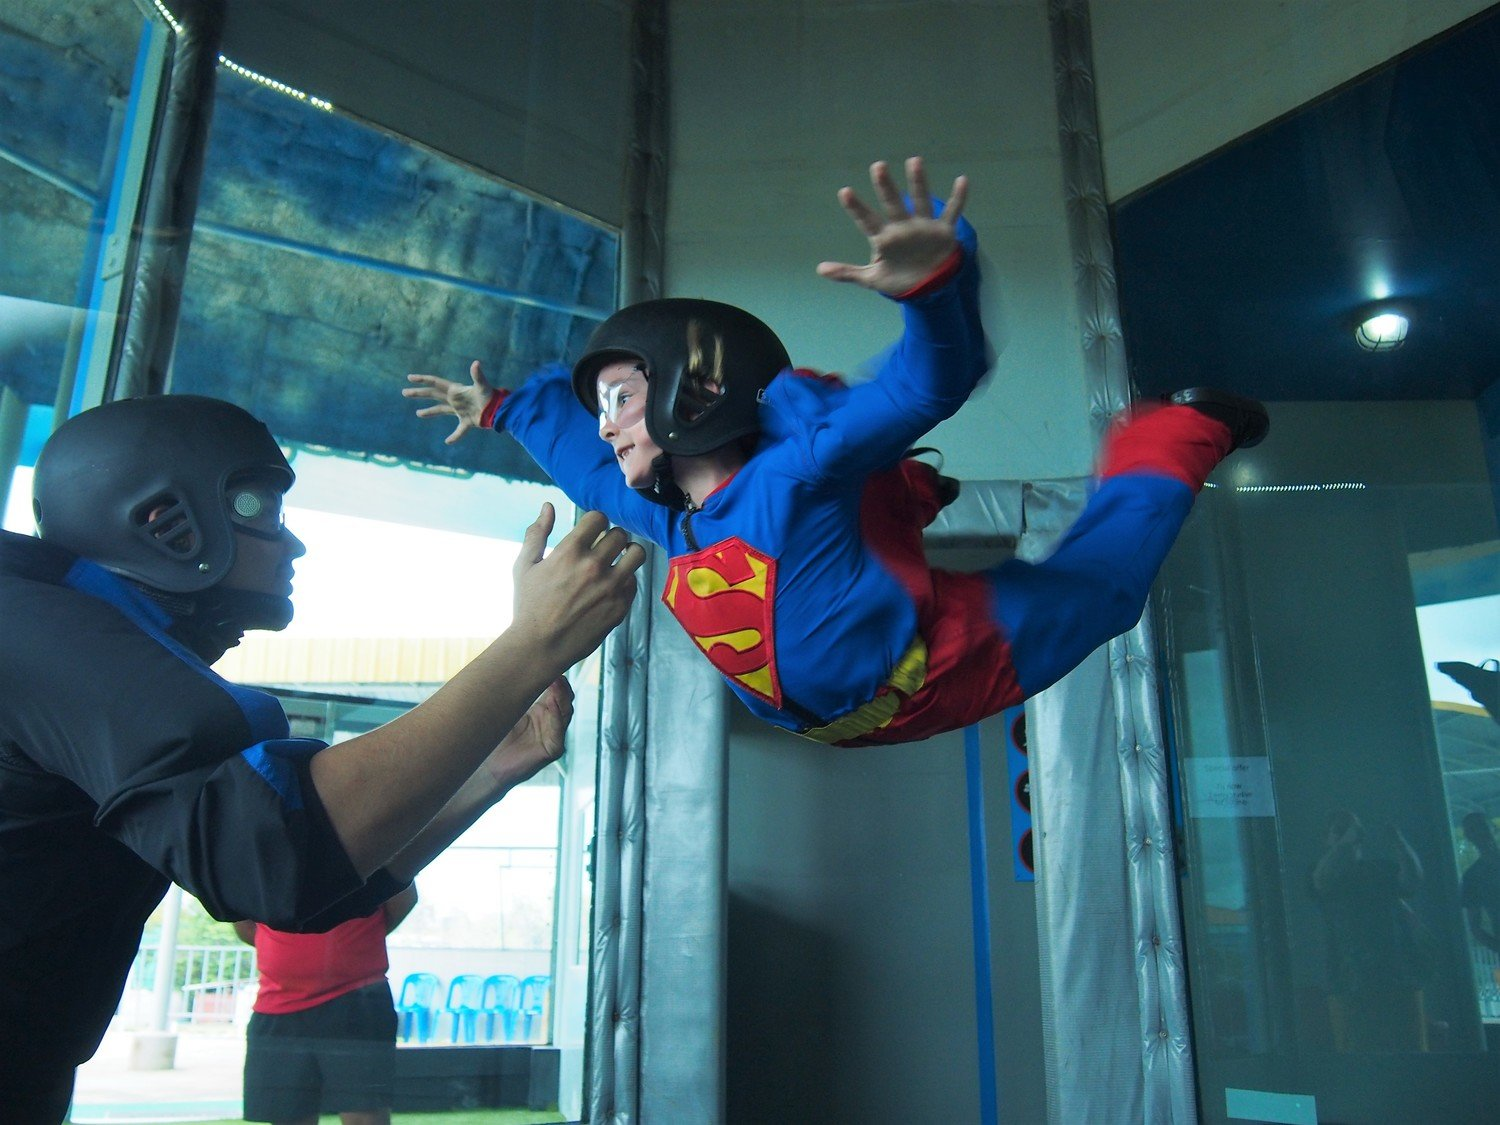 First timer - Below 140 cm height (2 skydives)